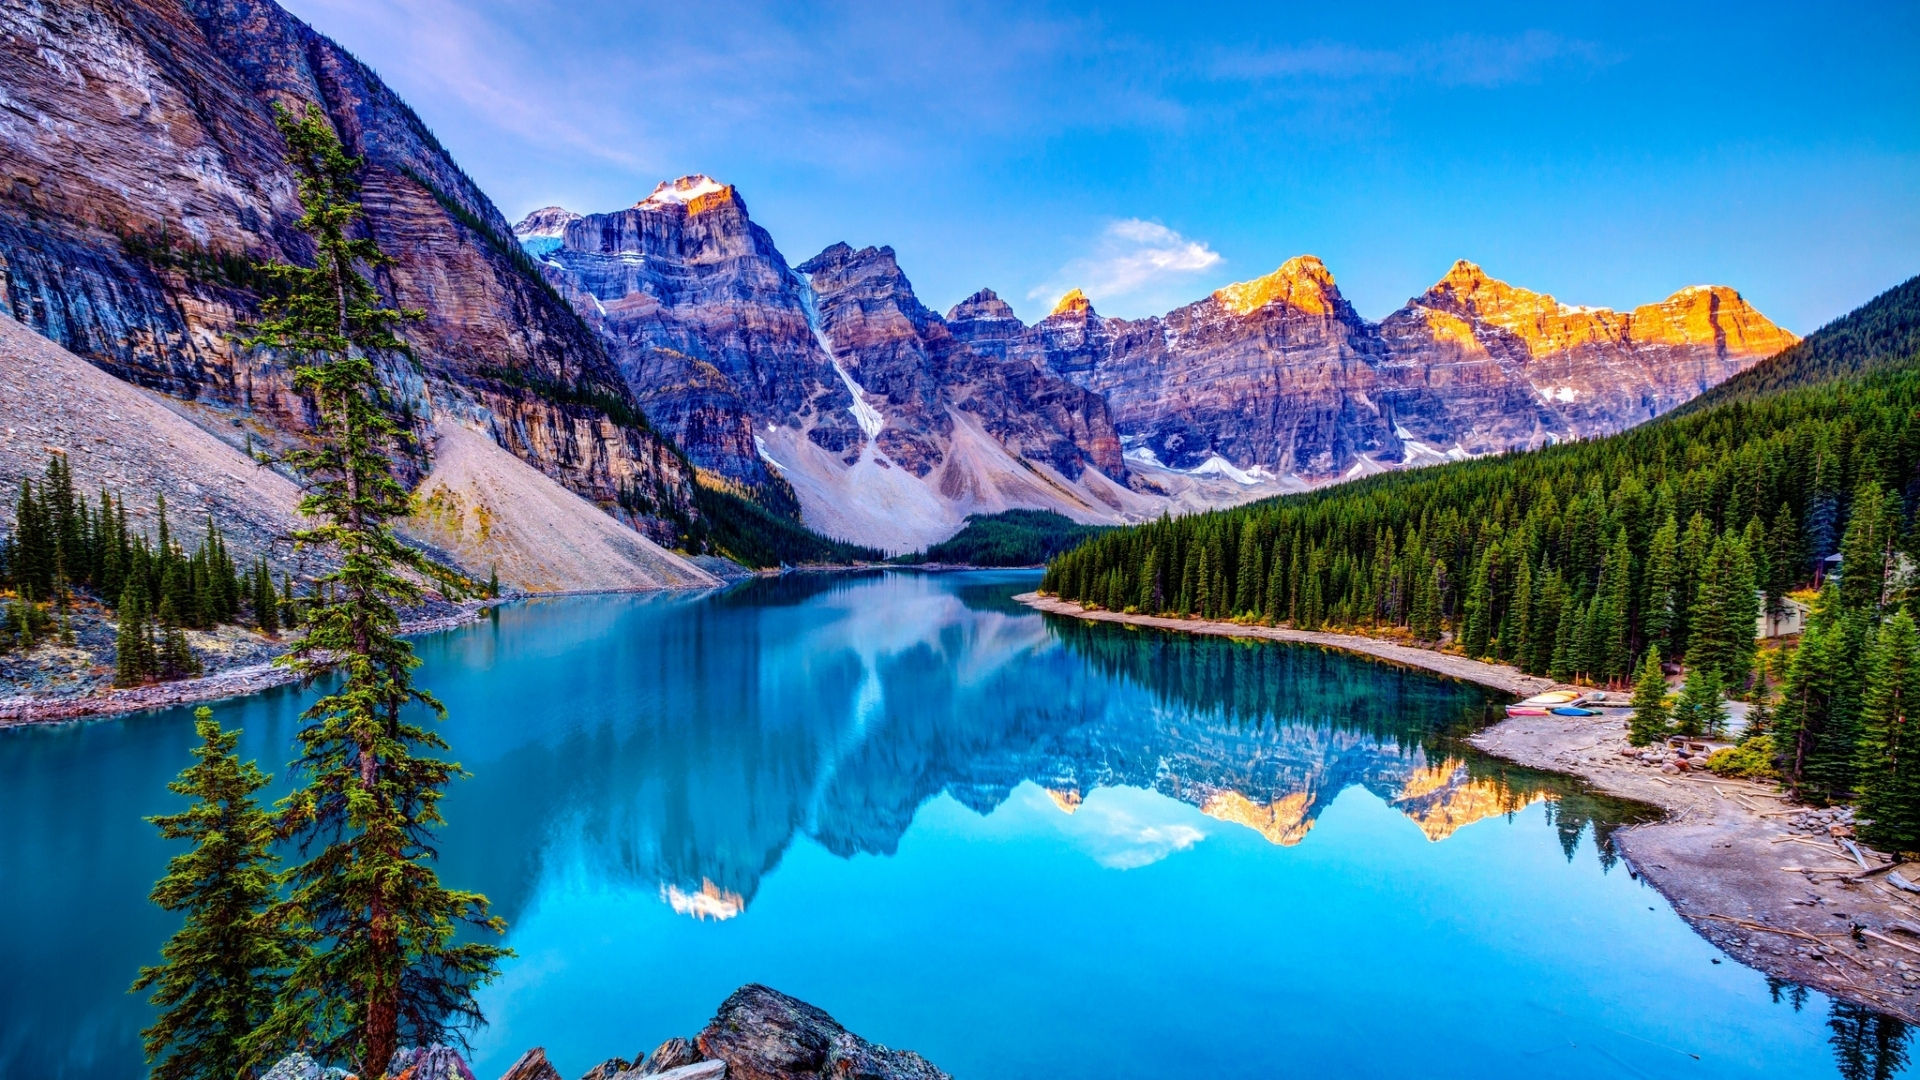 1080p nature wallpapers, widescreen wallpapers of 1080p nature, wp